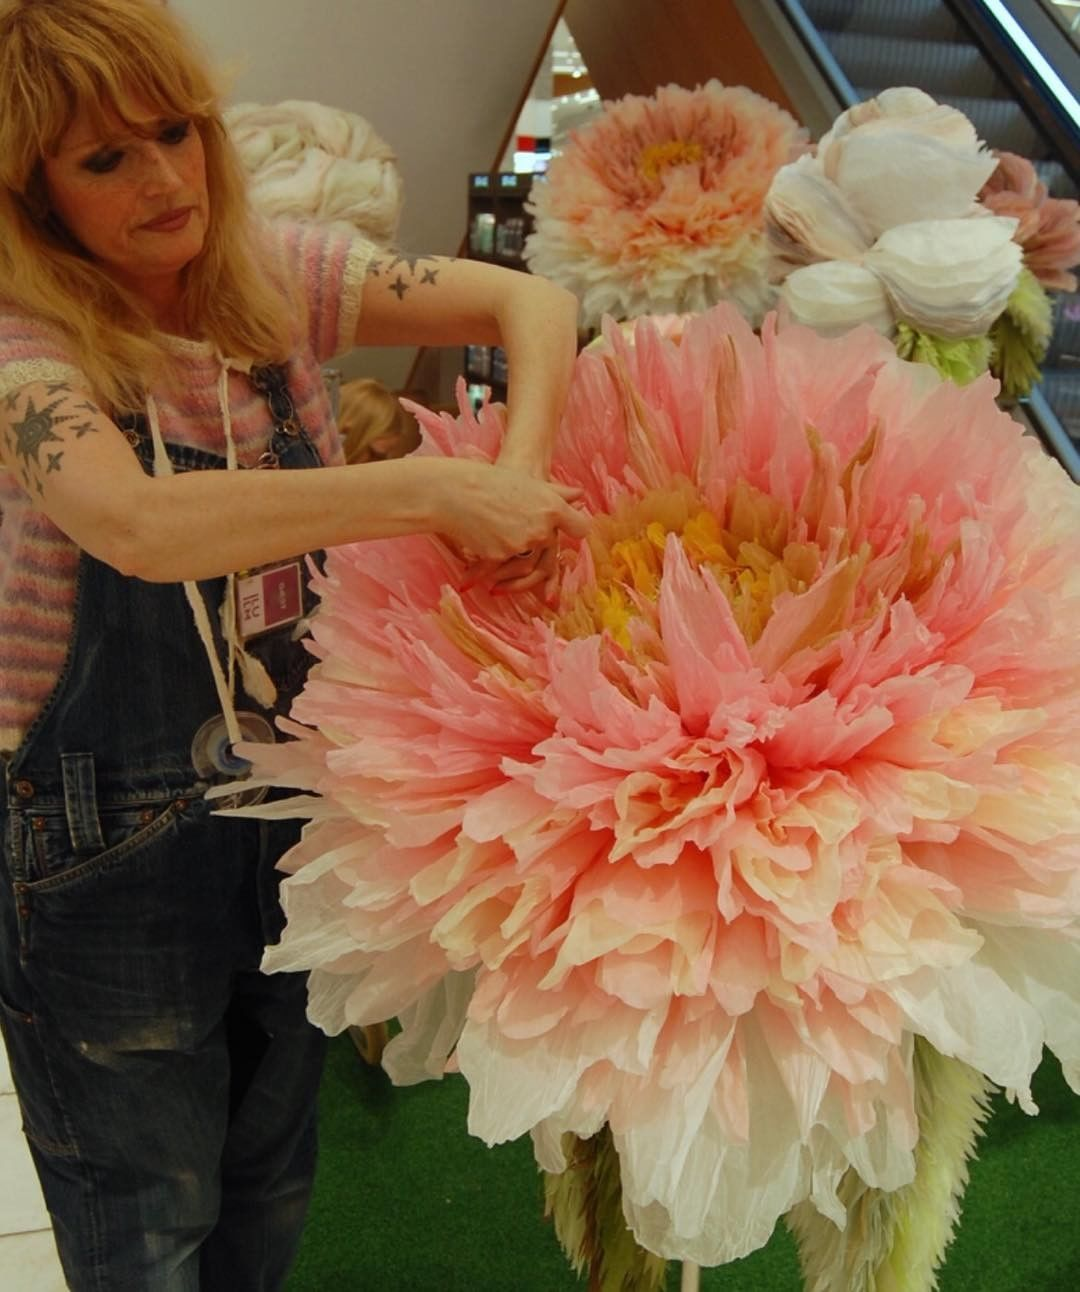 Giant pink tissue paper flower by marianne eriksen scott hansen giant pink tissue paper flower by marianne eriksen scott hansen izmirmasajfo